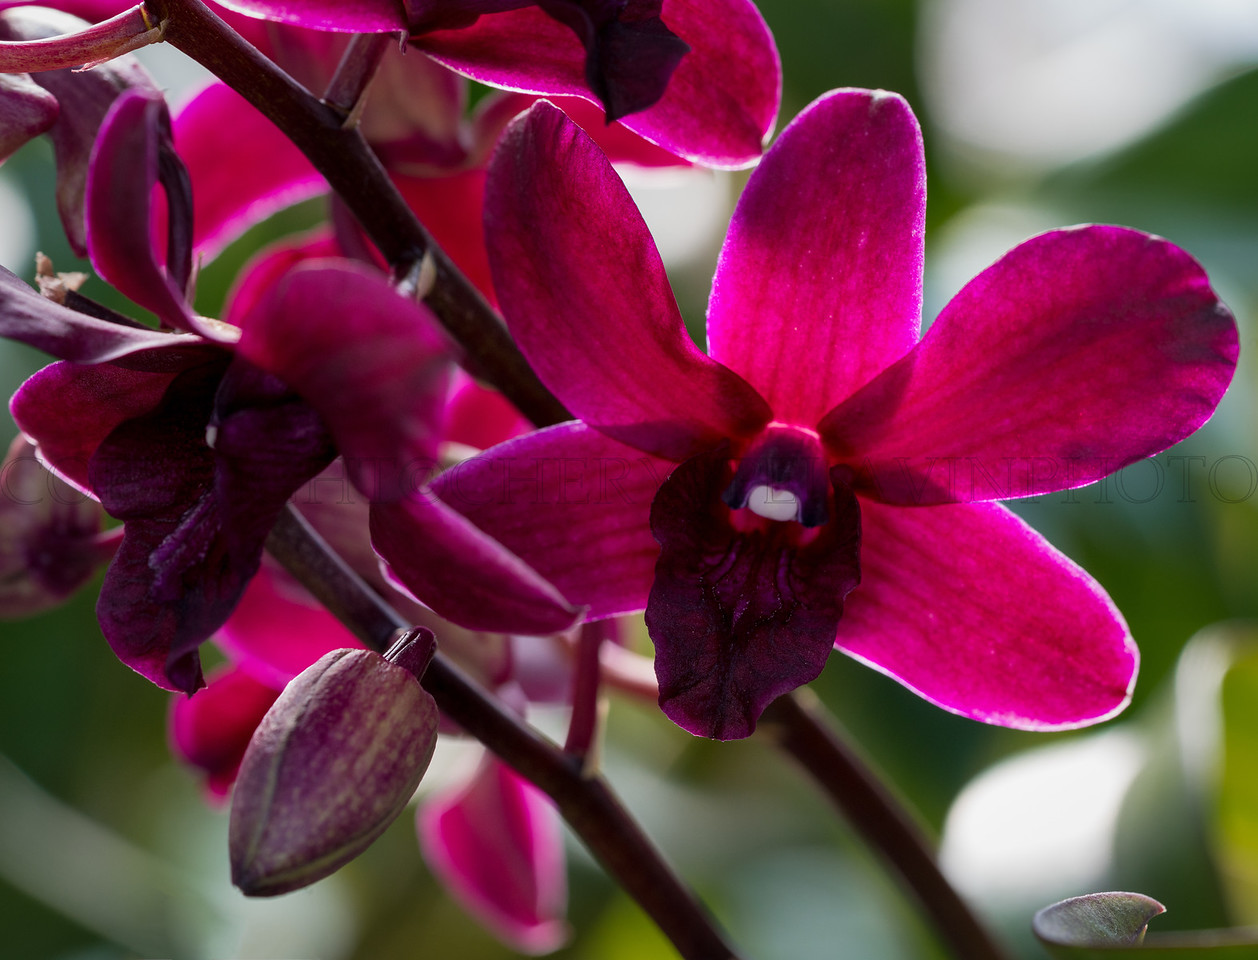 Backlit Burgandy Orchid and Bud